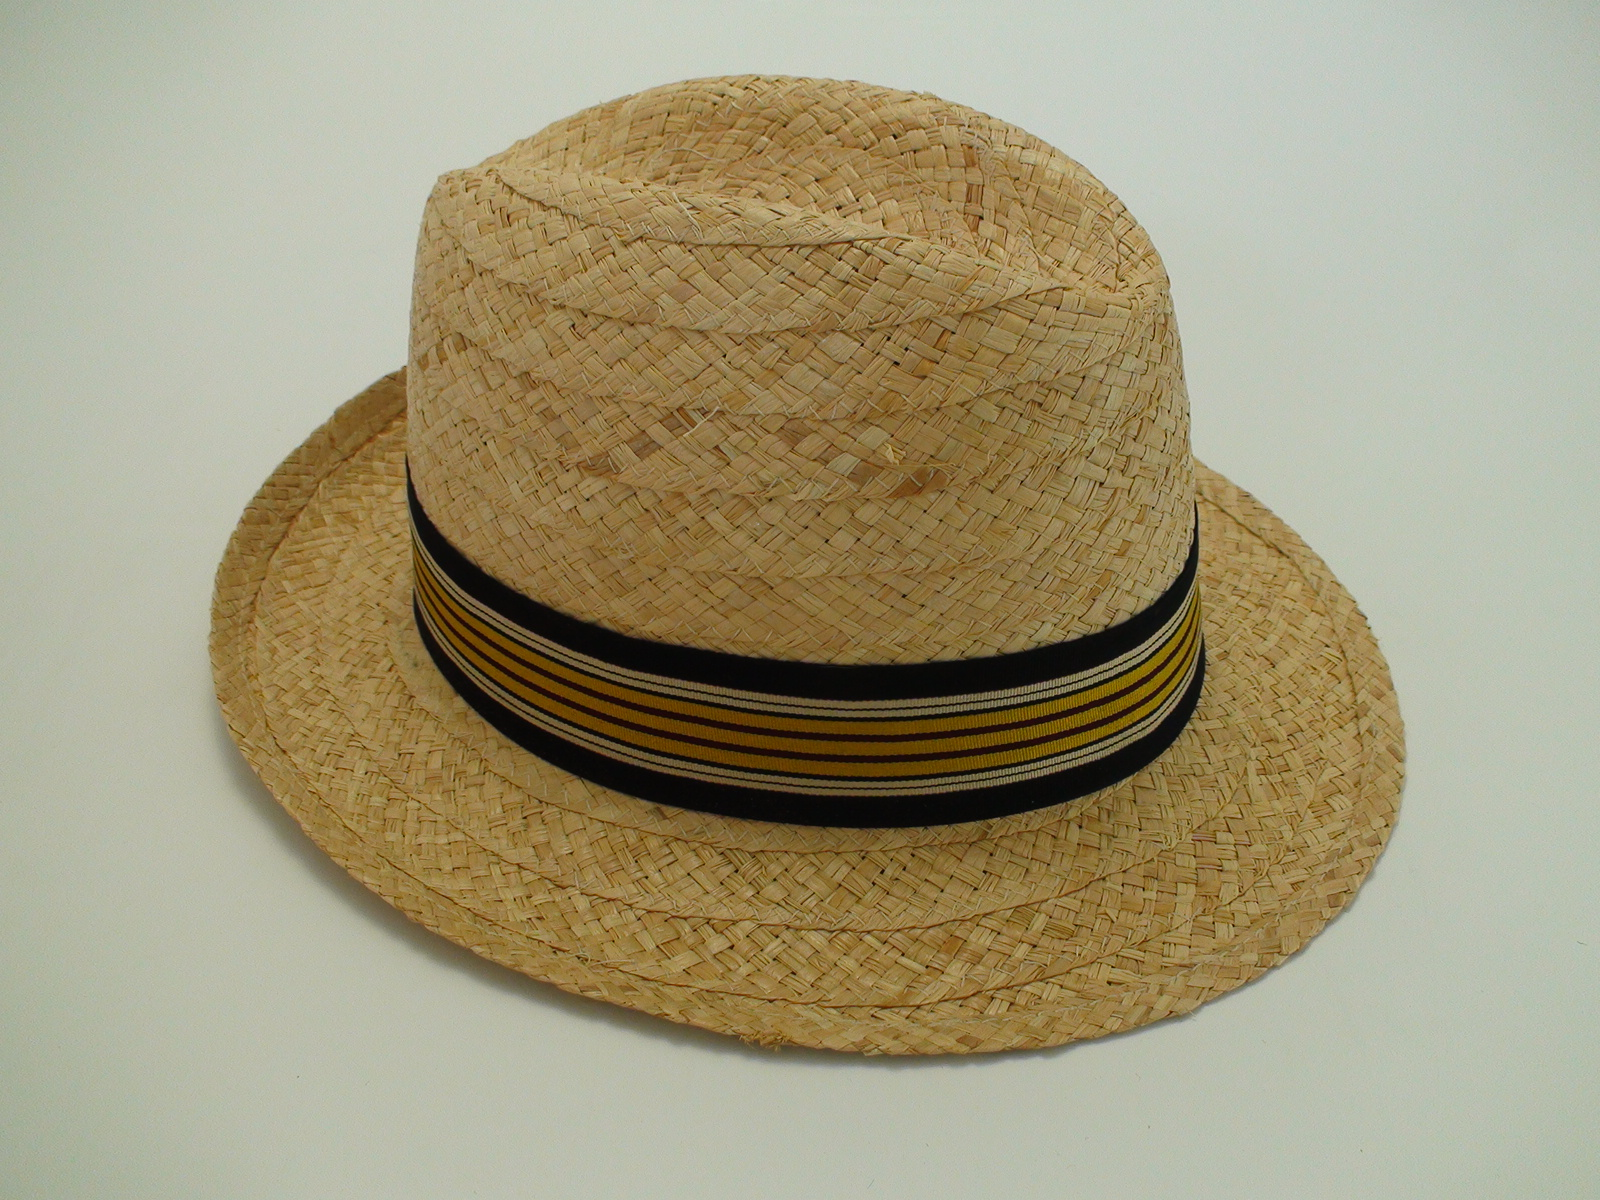 Biltmore Hats Optimo Natural Raffia Panama Fedora Hat 3ea643c748a6